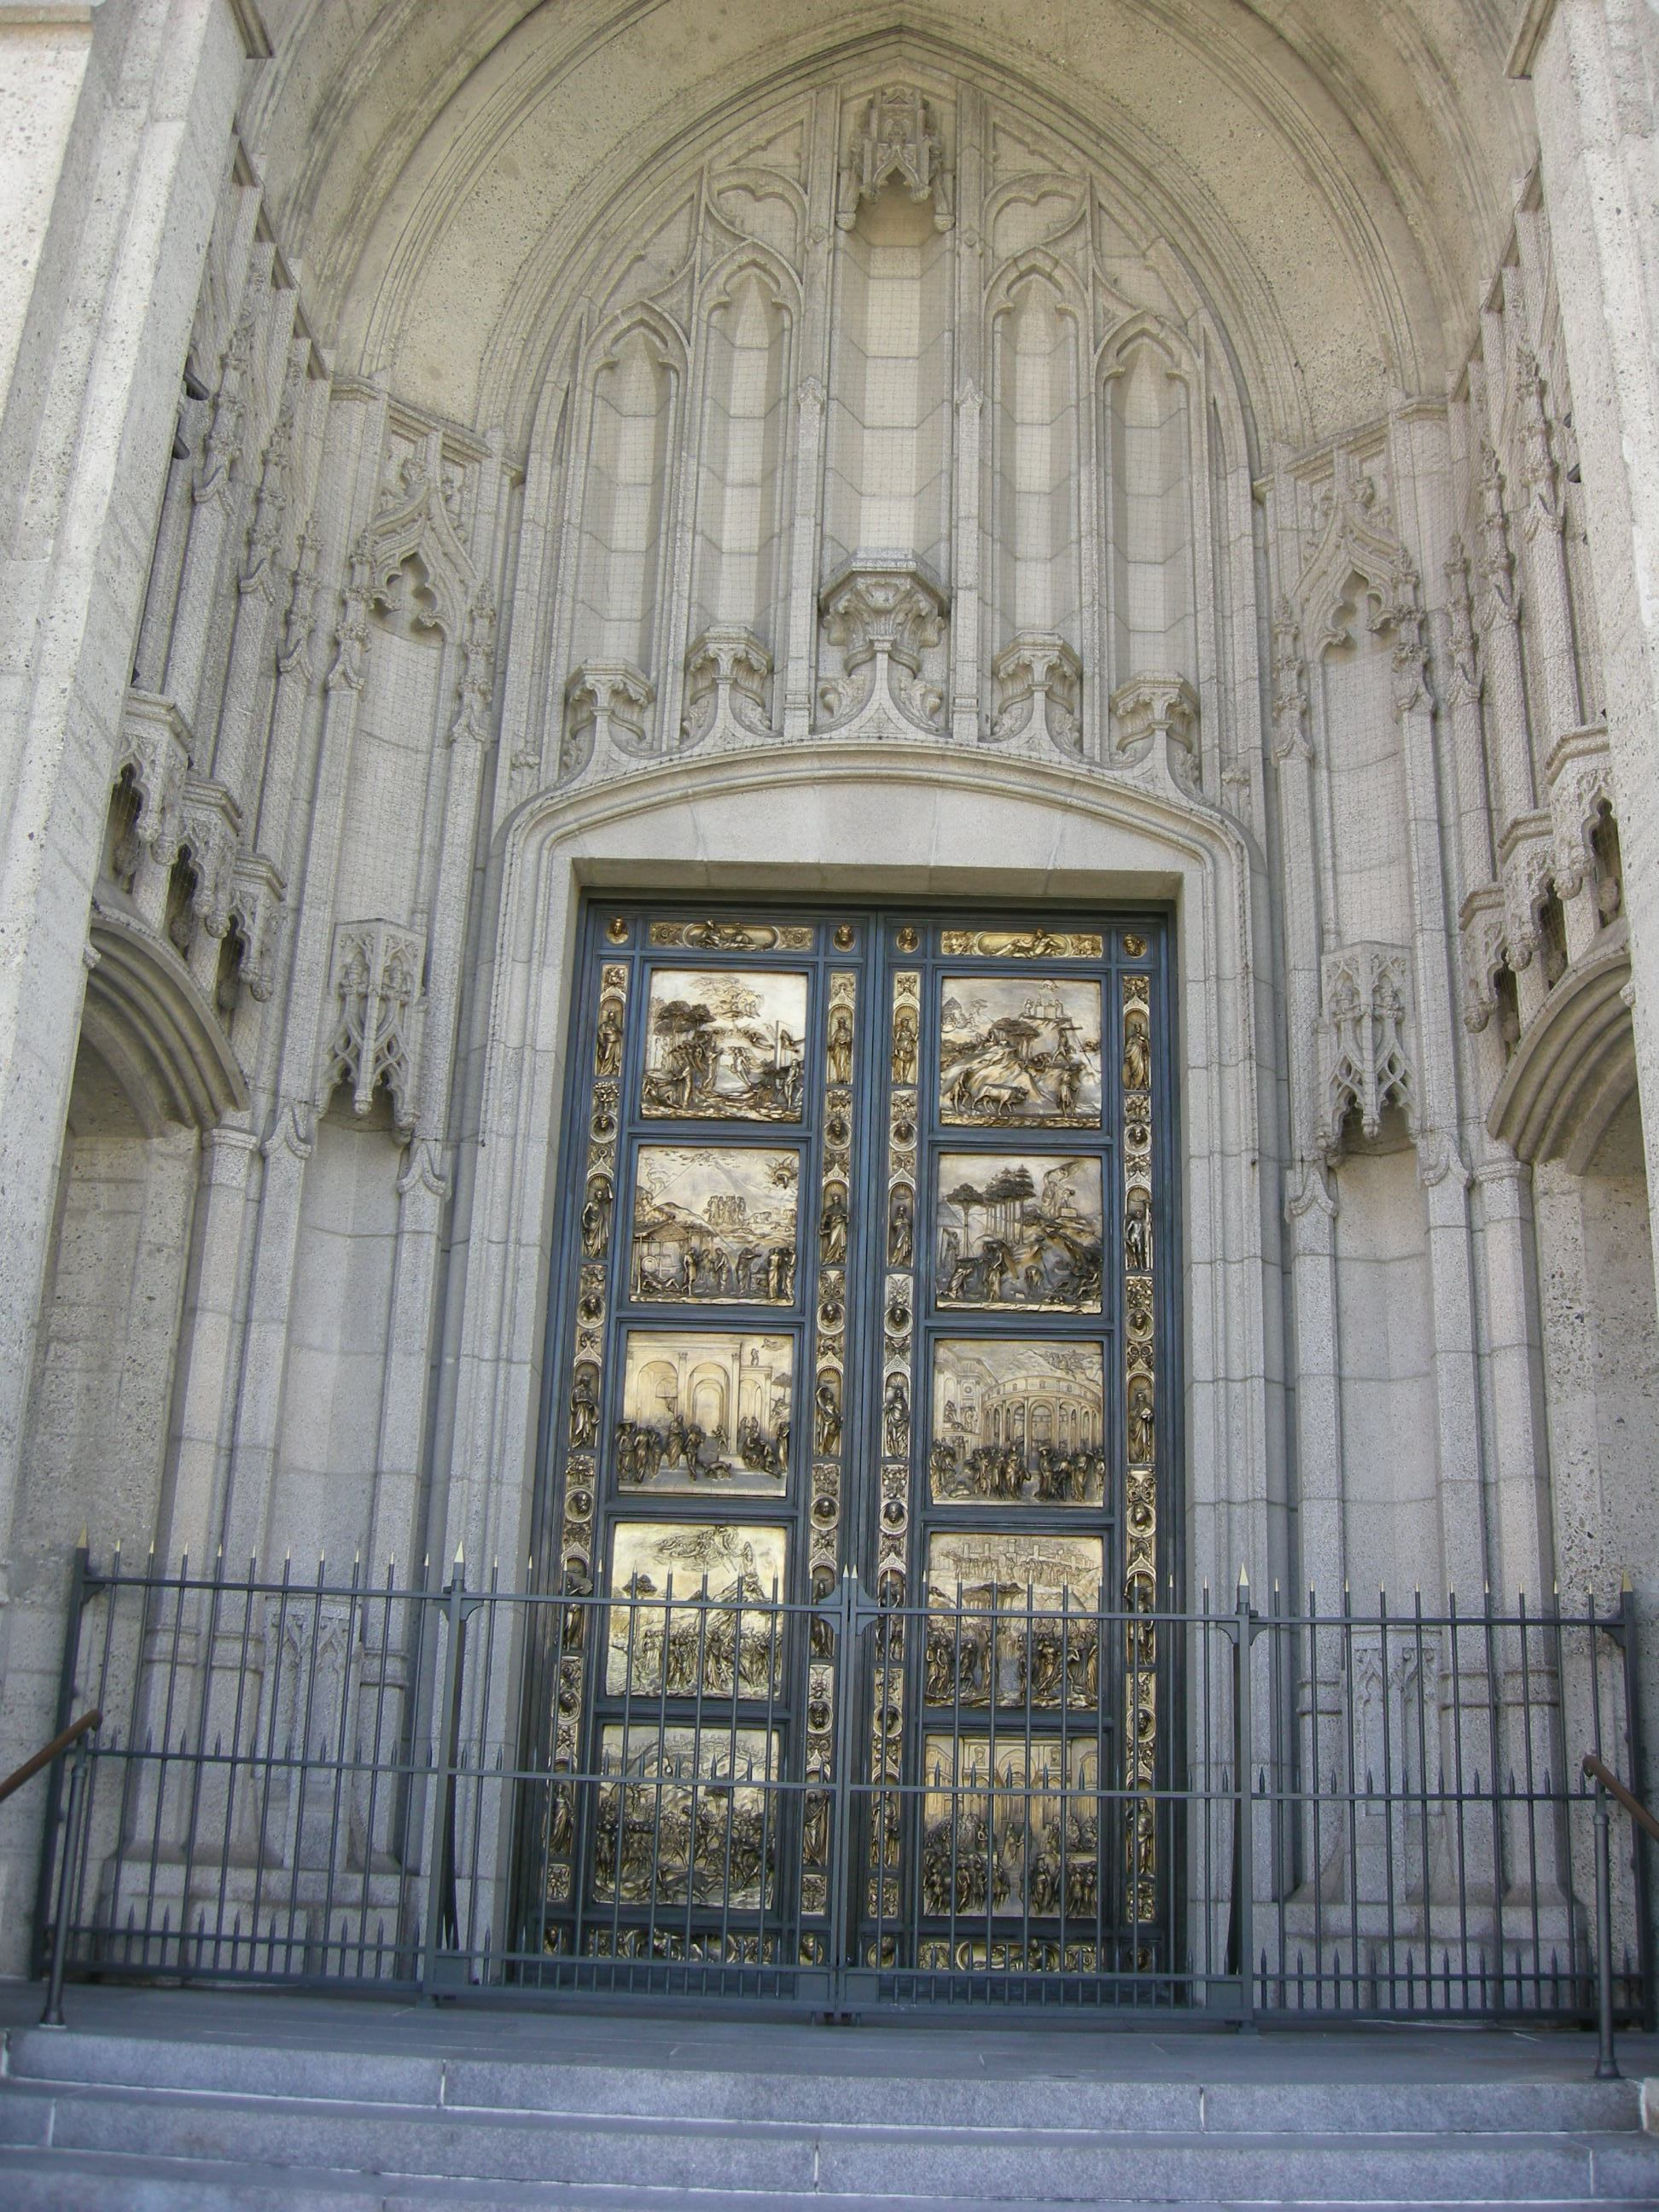 FileGrace Cathedral doors 03.JPG & File:Grace Cathedral doors 03.JPG - Wikimedia Commons